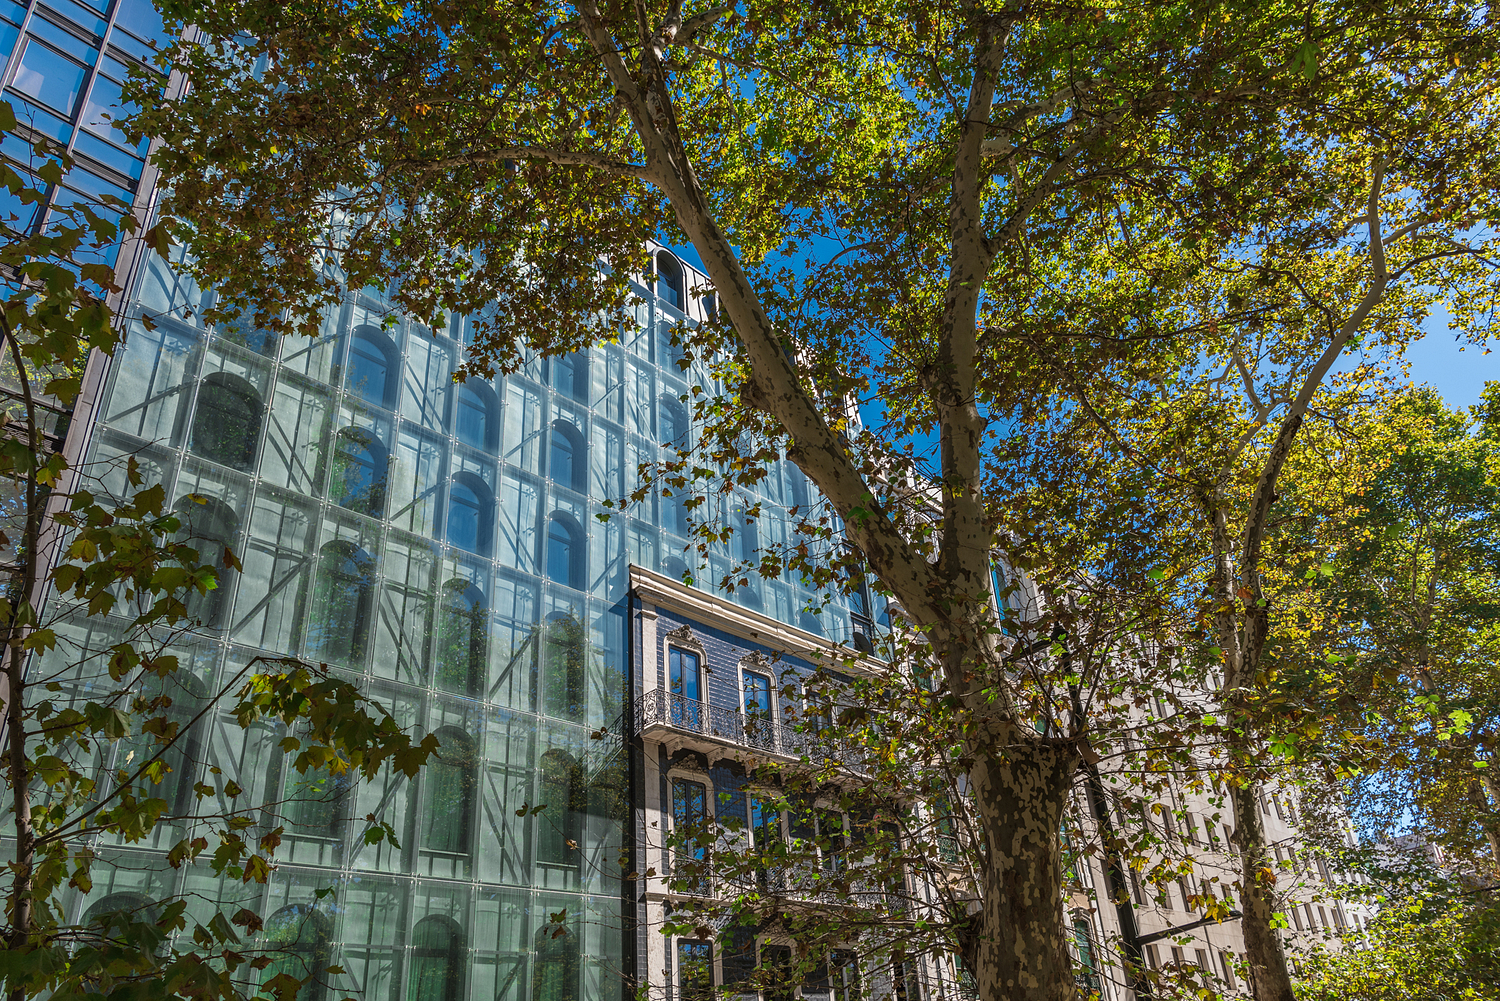 Office building through the trees, Lisbon